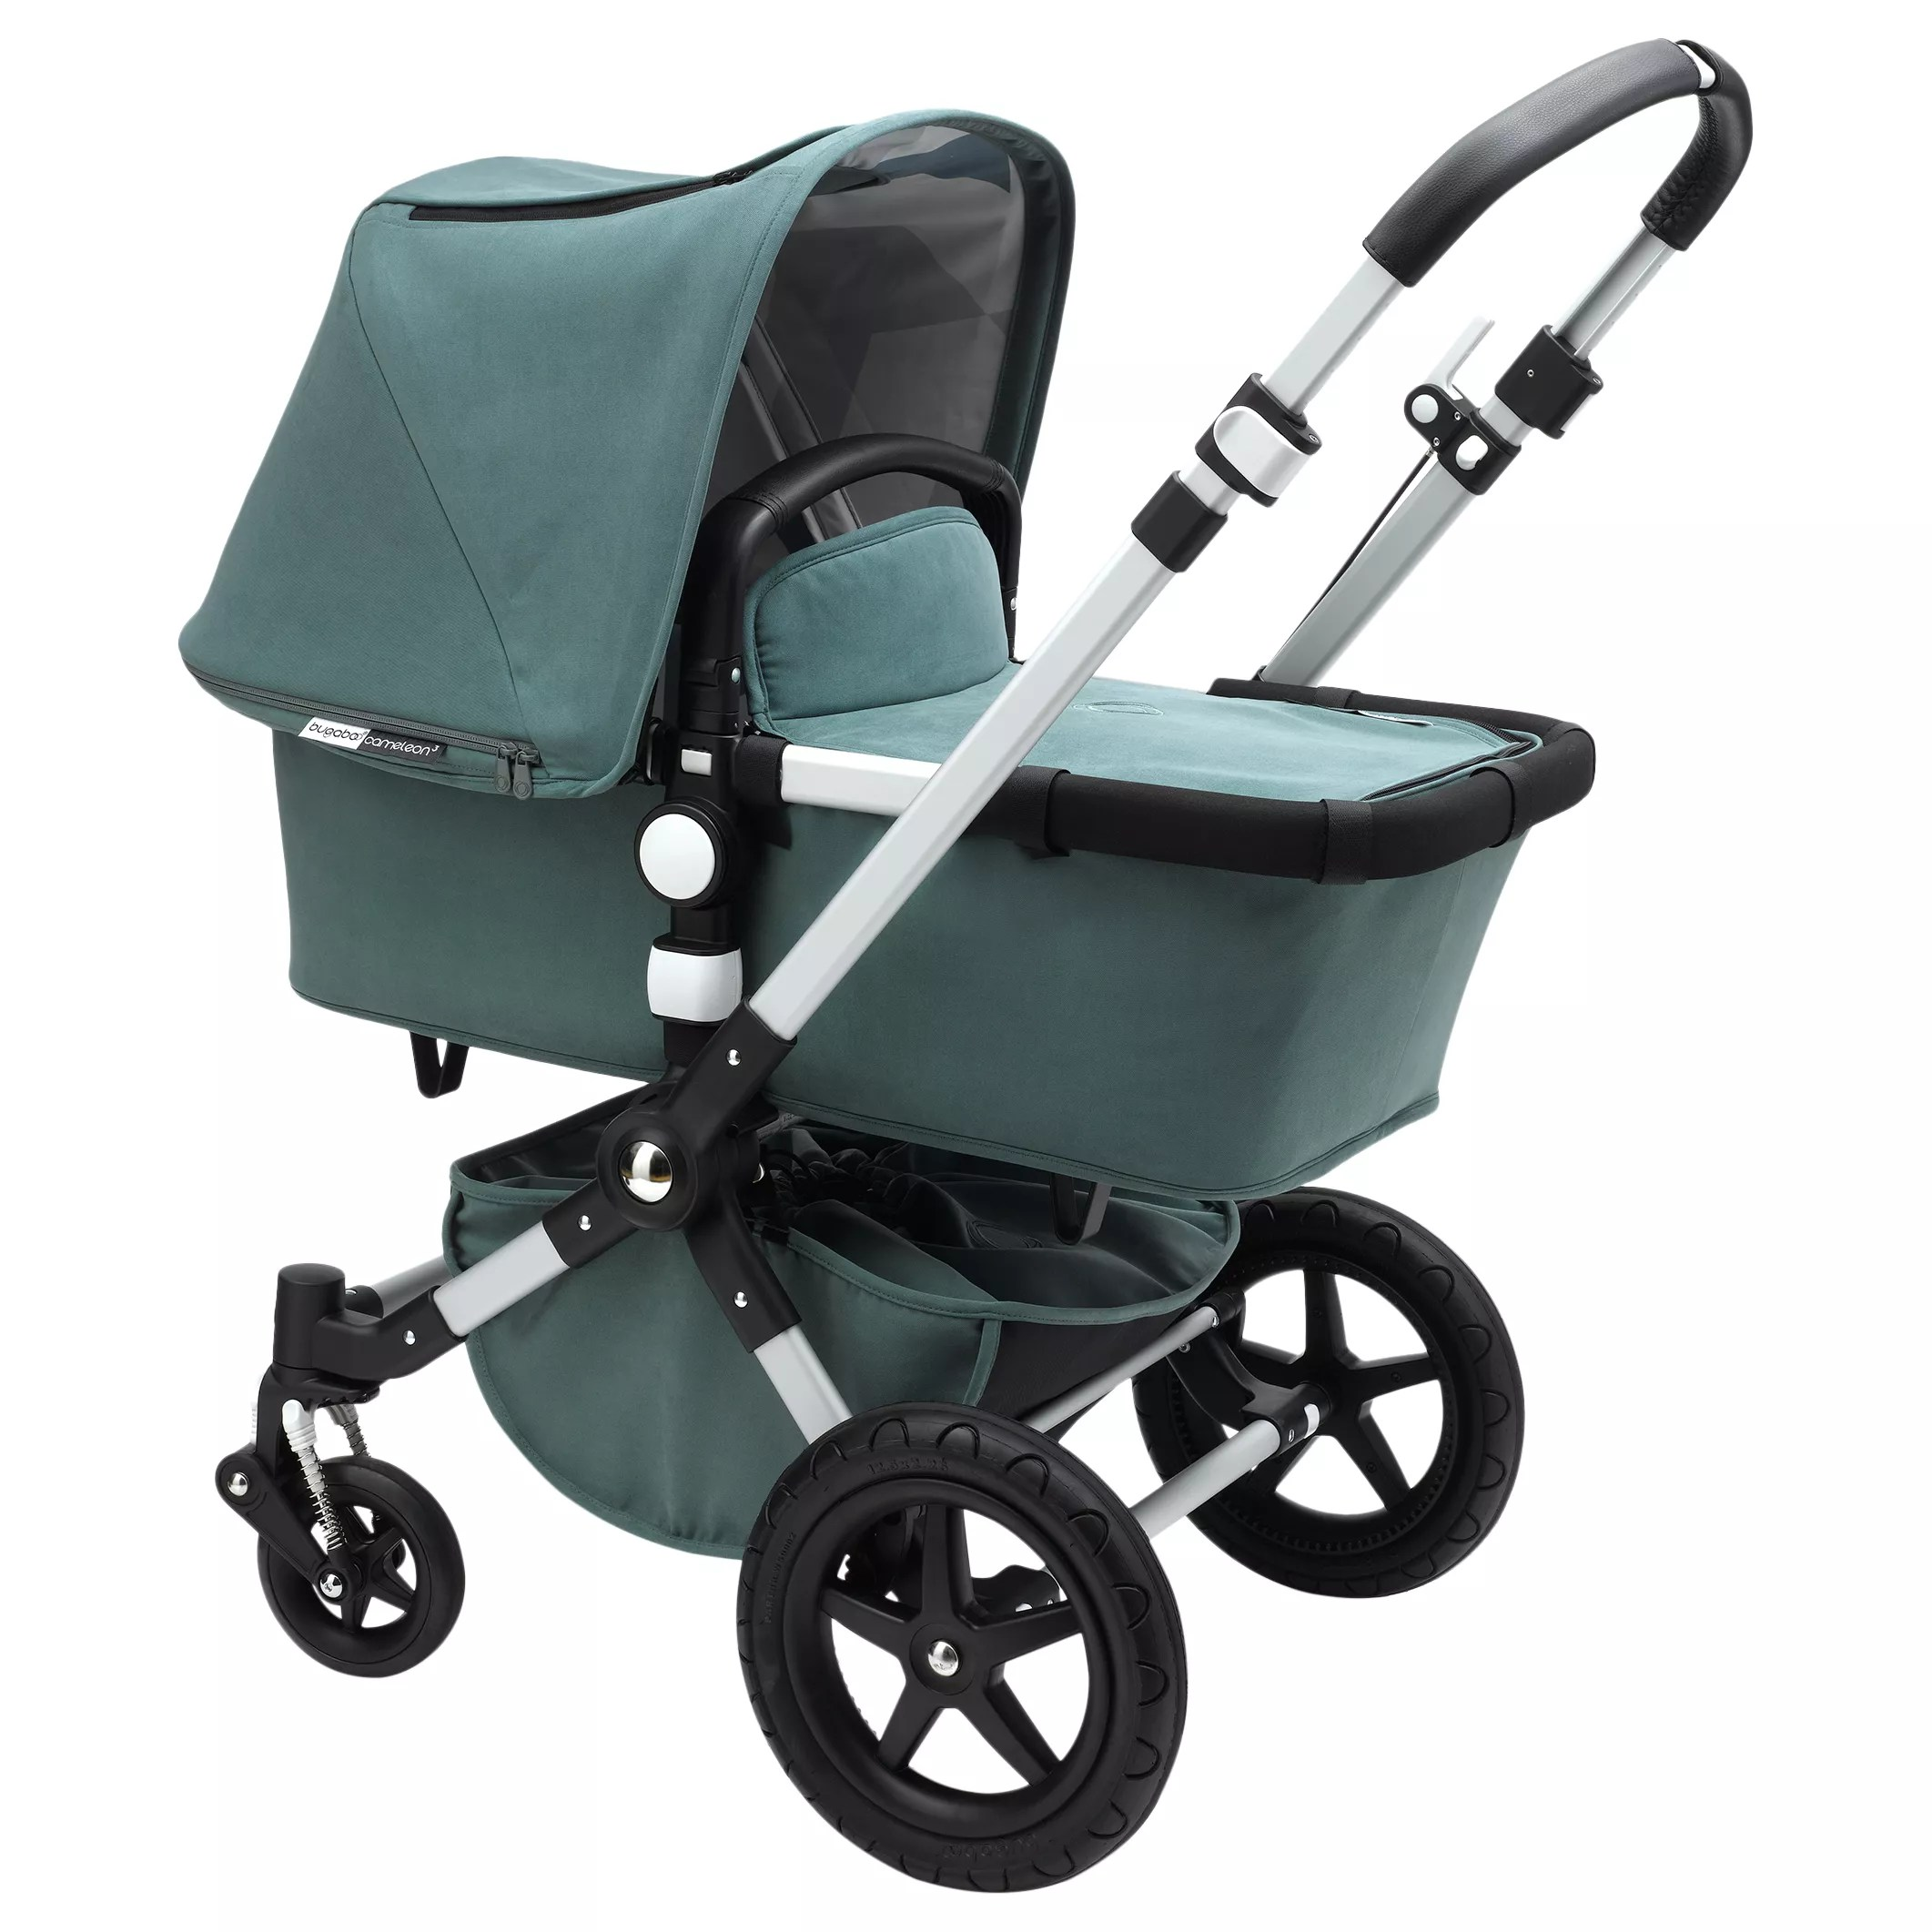 Bugaboo Cameleon 3 Maximum Weight Bugaboo Cameleon3 Kite Complete Pushchair Balsam Green